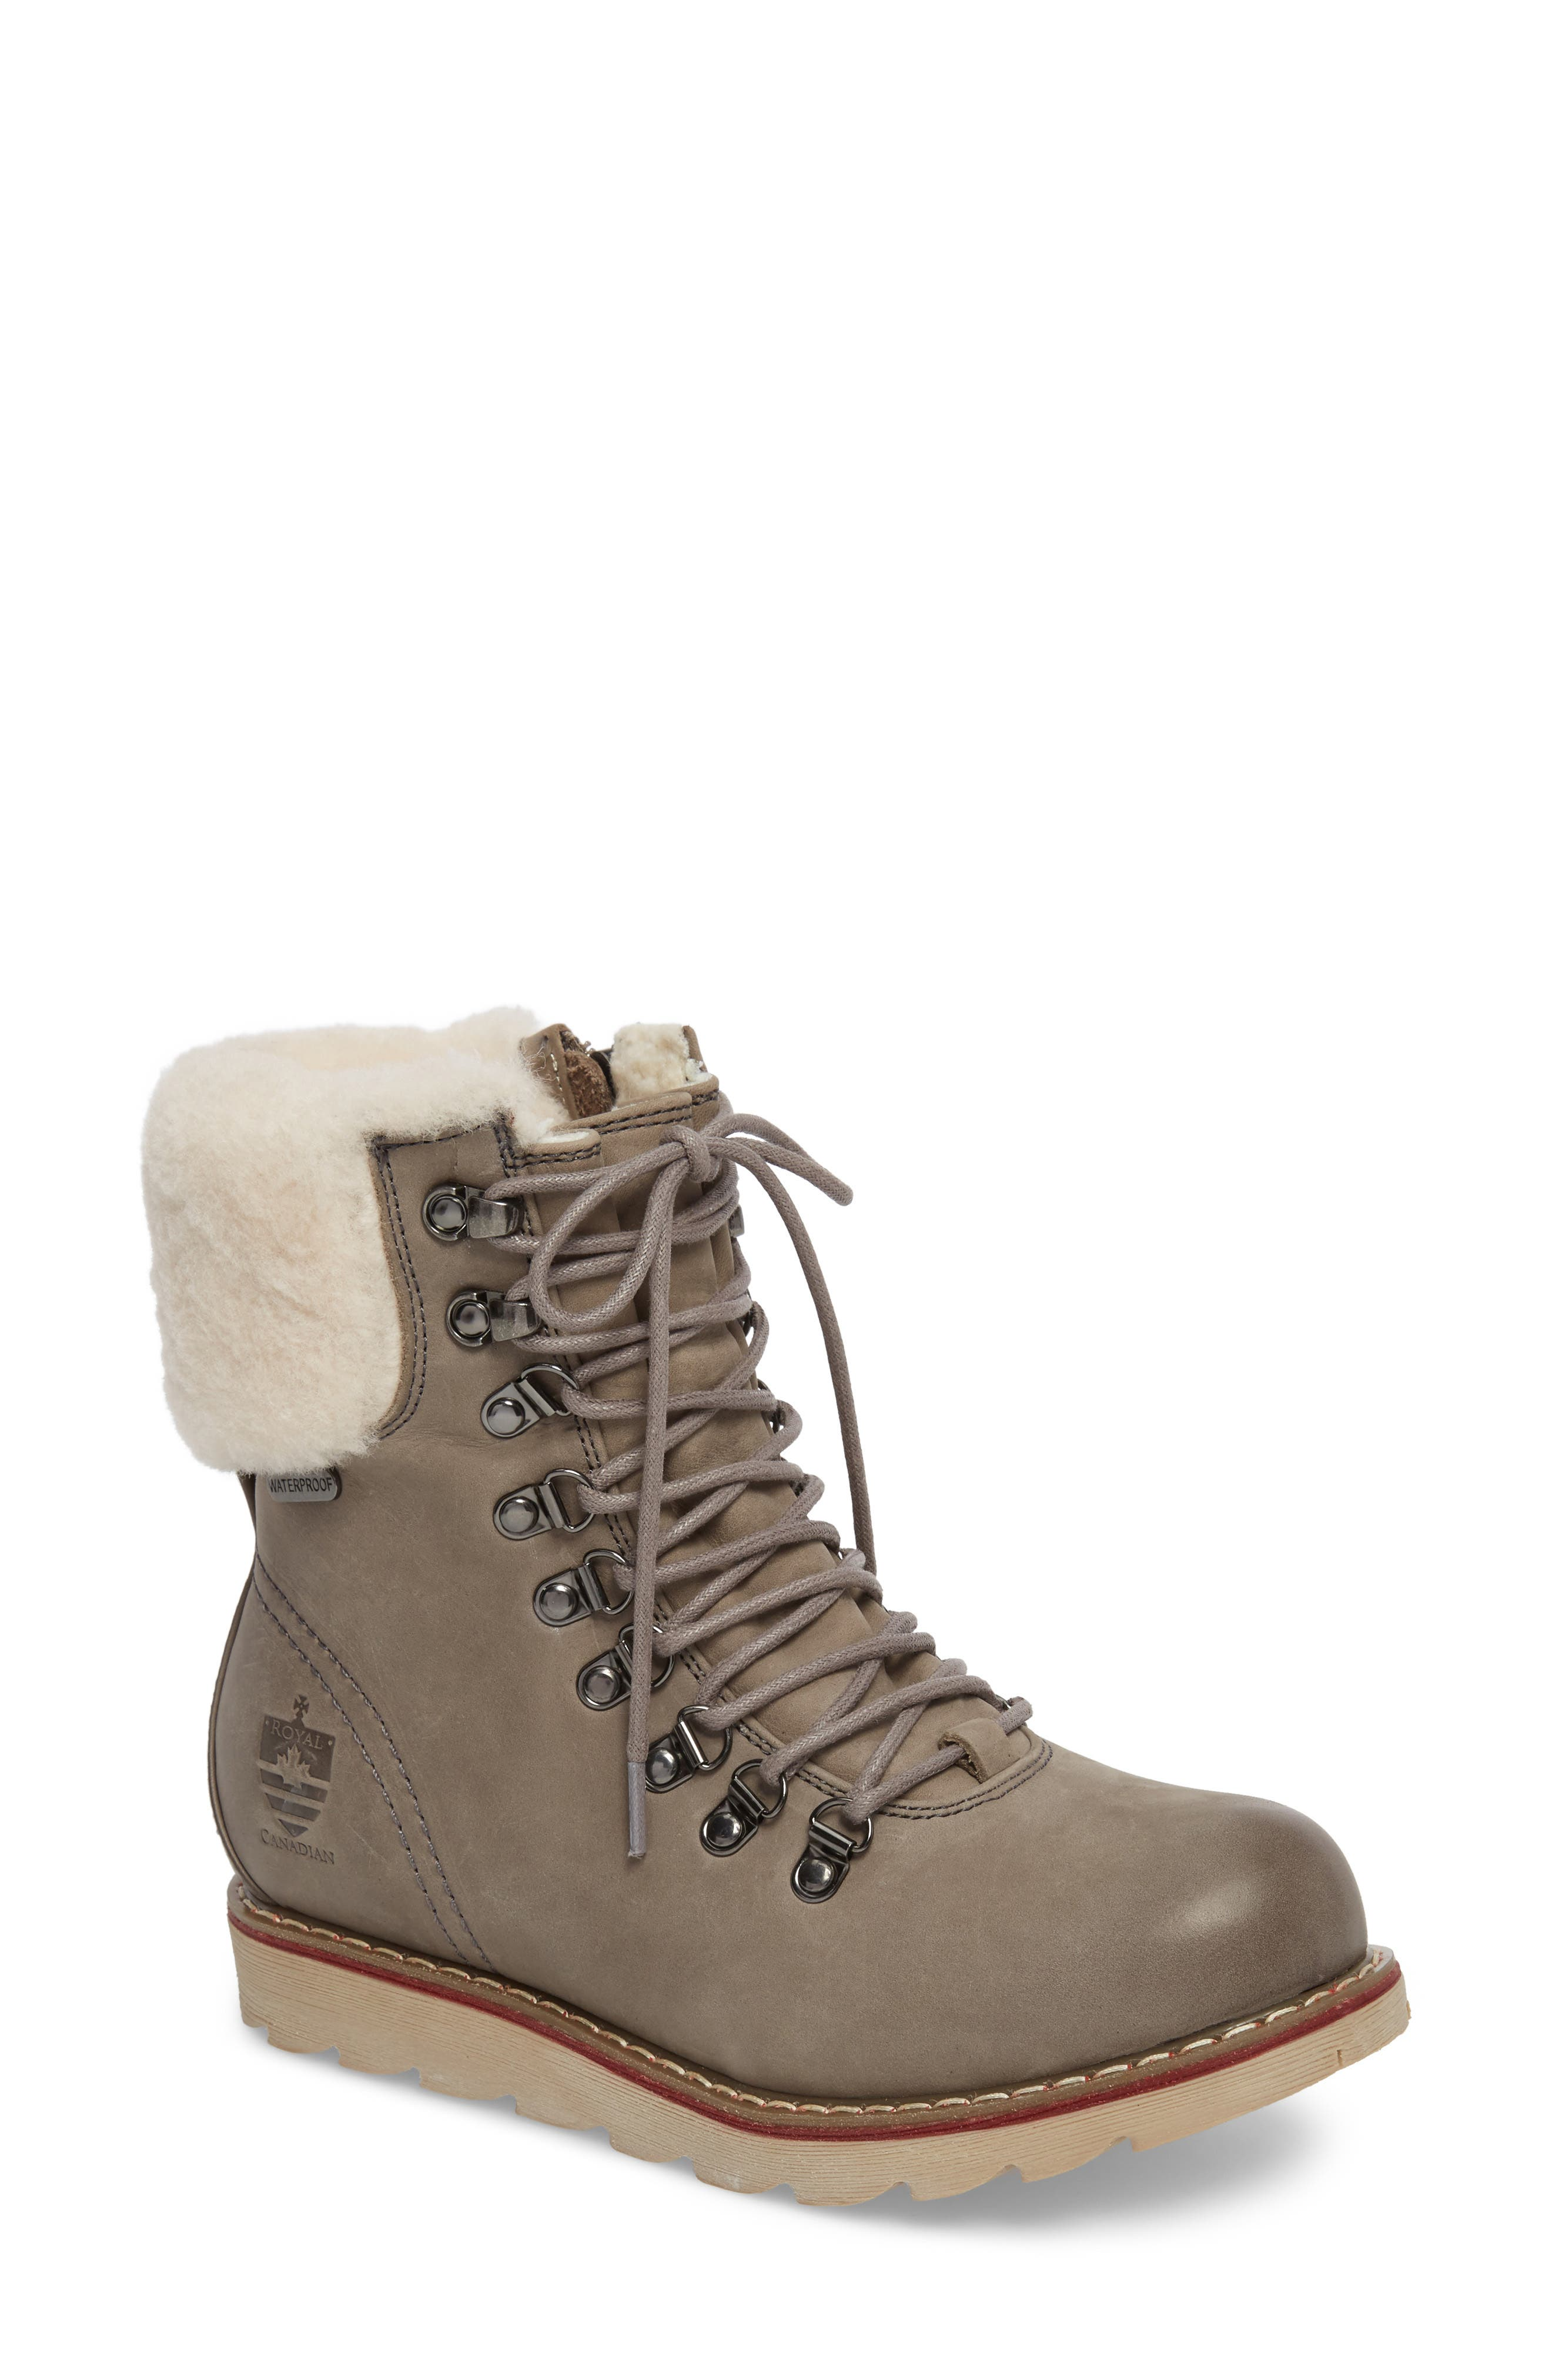 Lethbridge Waterproof Snow Boot with Genuine Shearling Cuff,                             Main thumbnail 2, color,